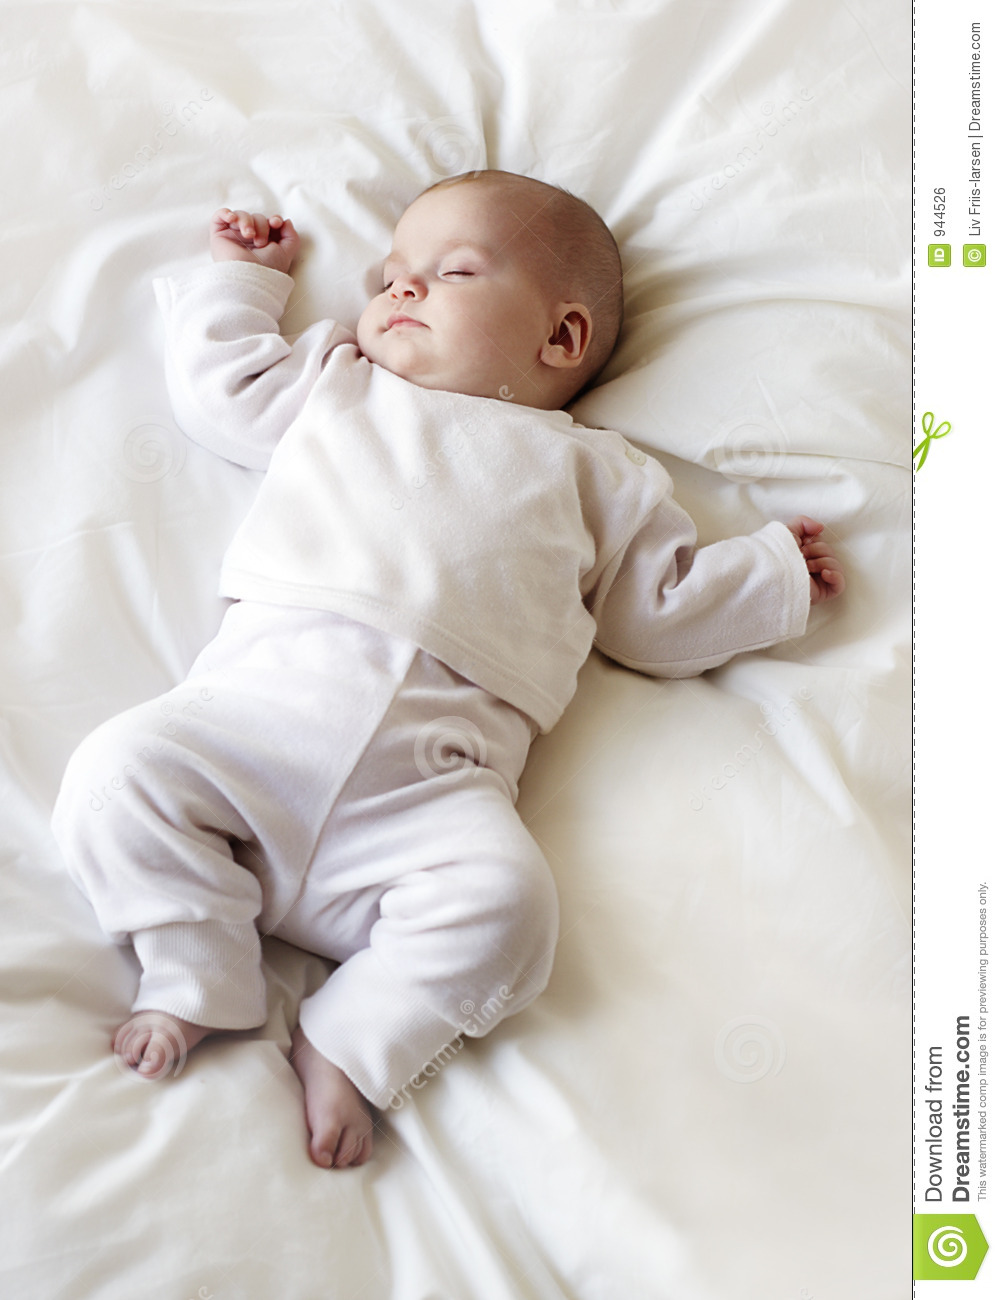 Sleeping baby girl stock photo. Image of soft, sleeping ...